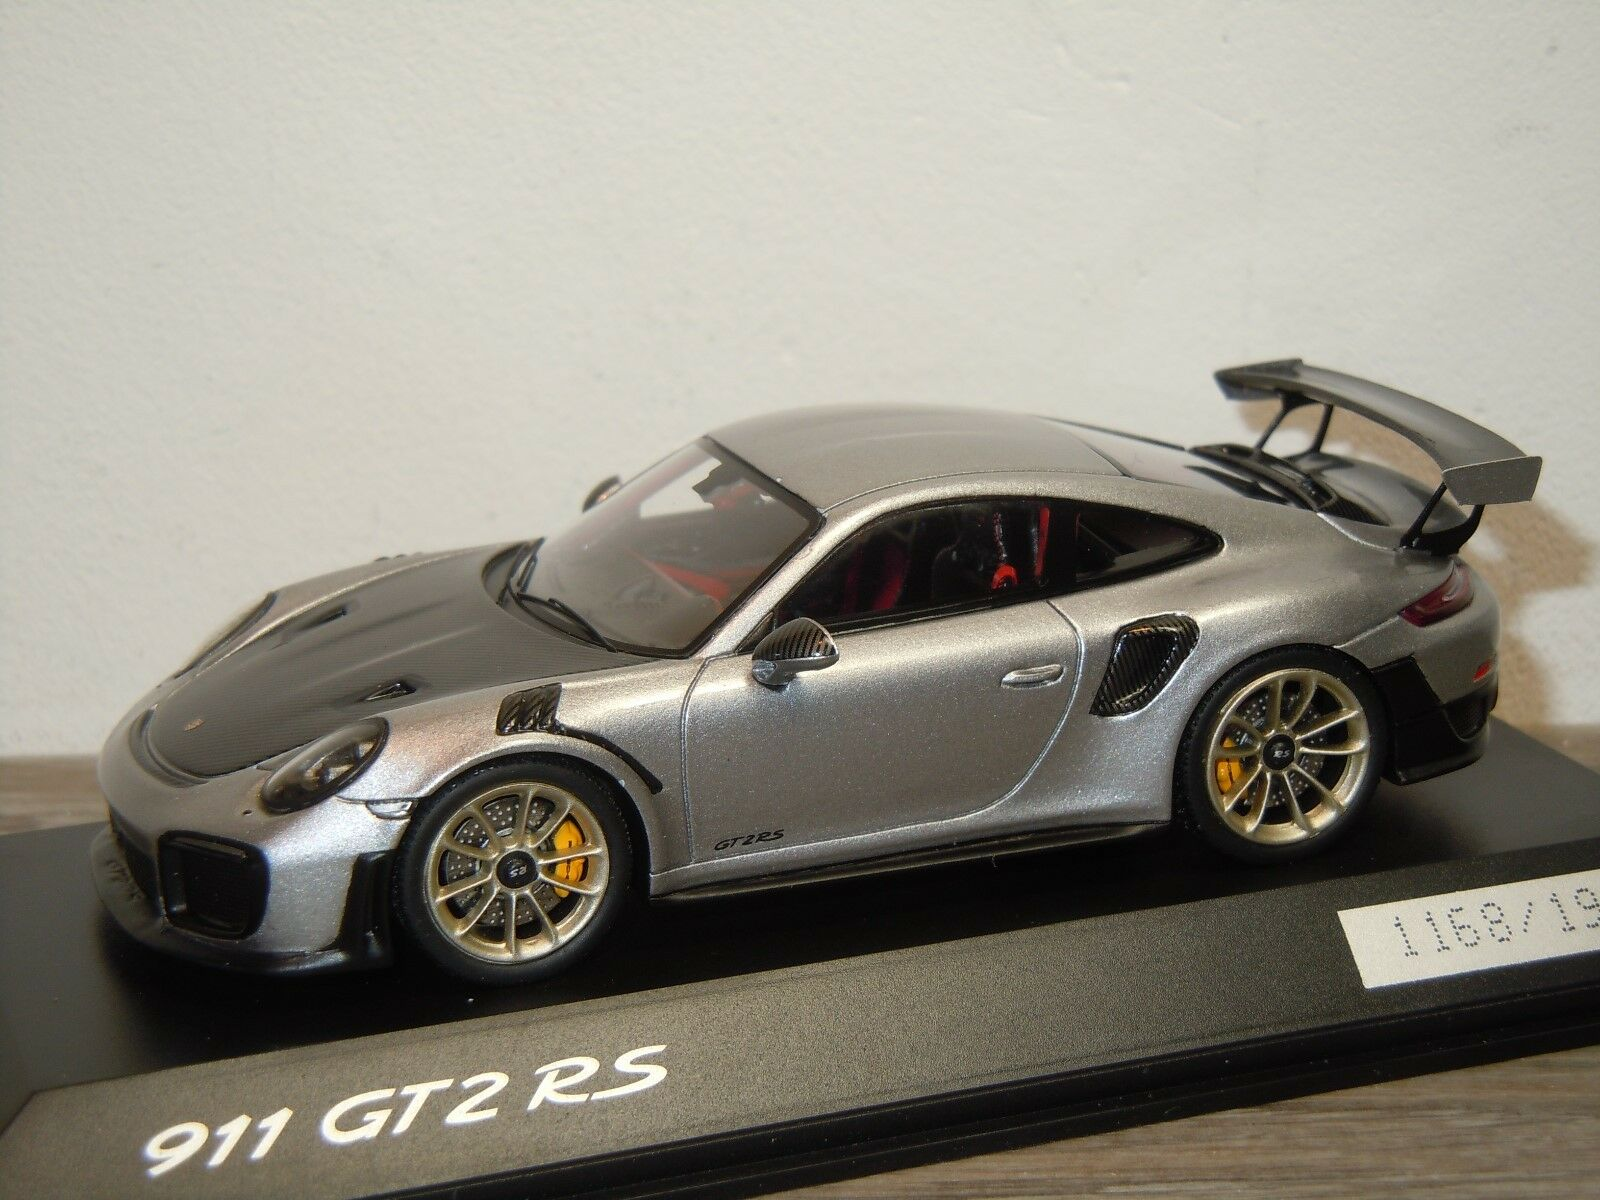 Porsche 911 991 GT2 RS 2017 - Spark 1 43 in Box 35919